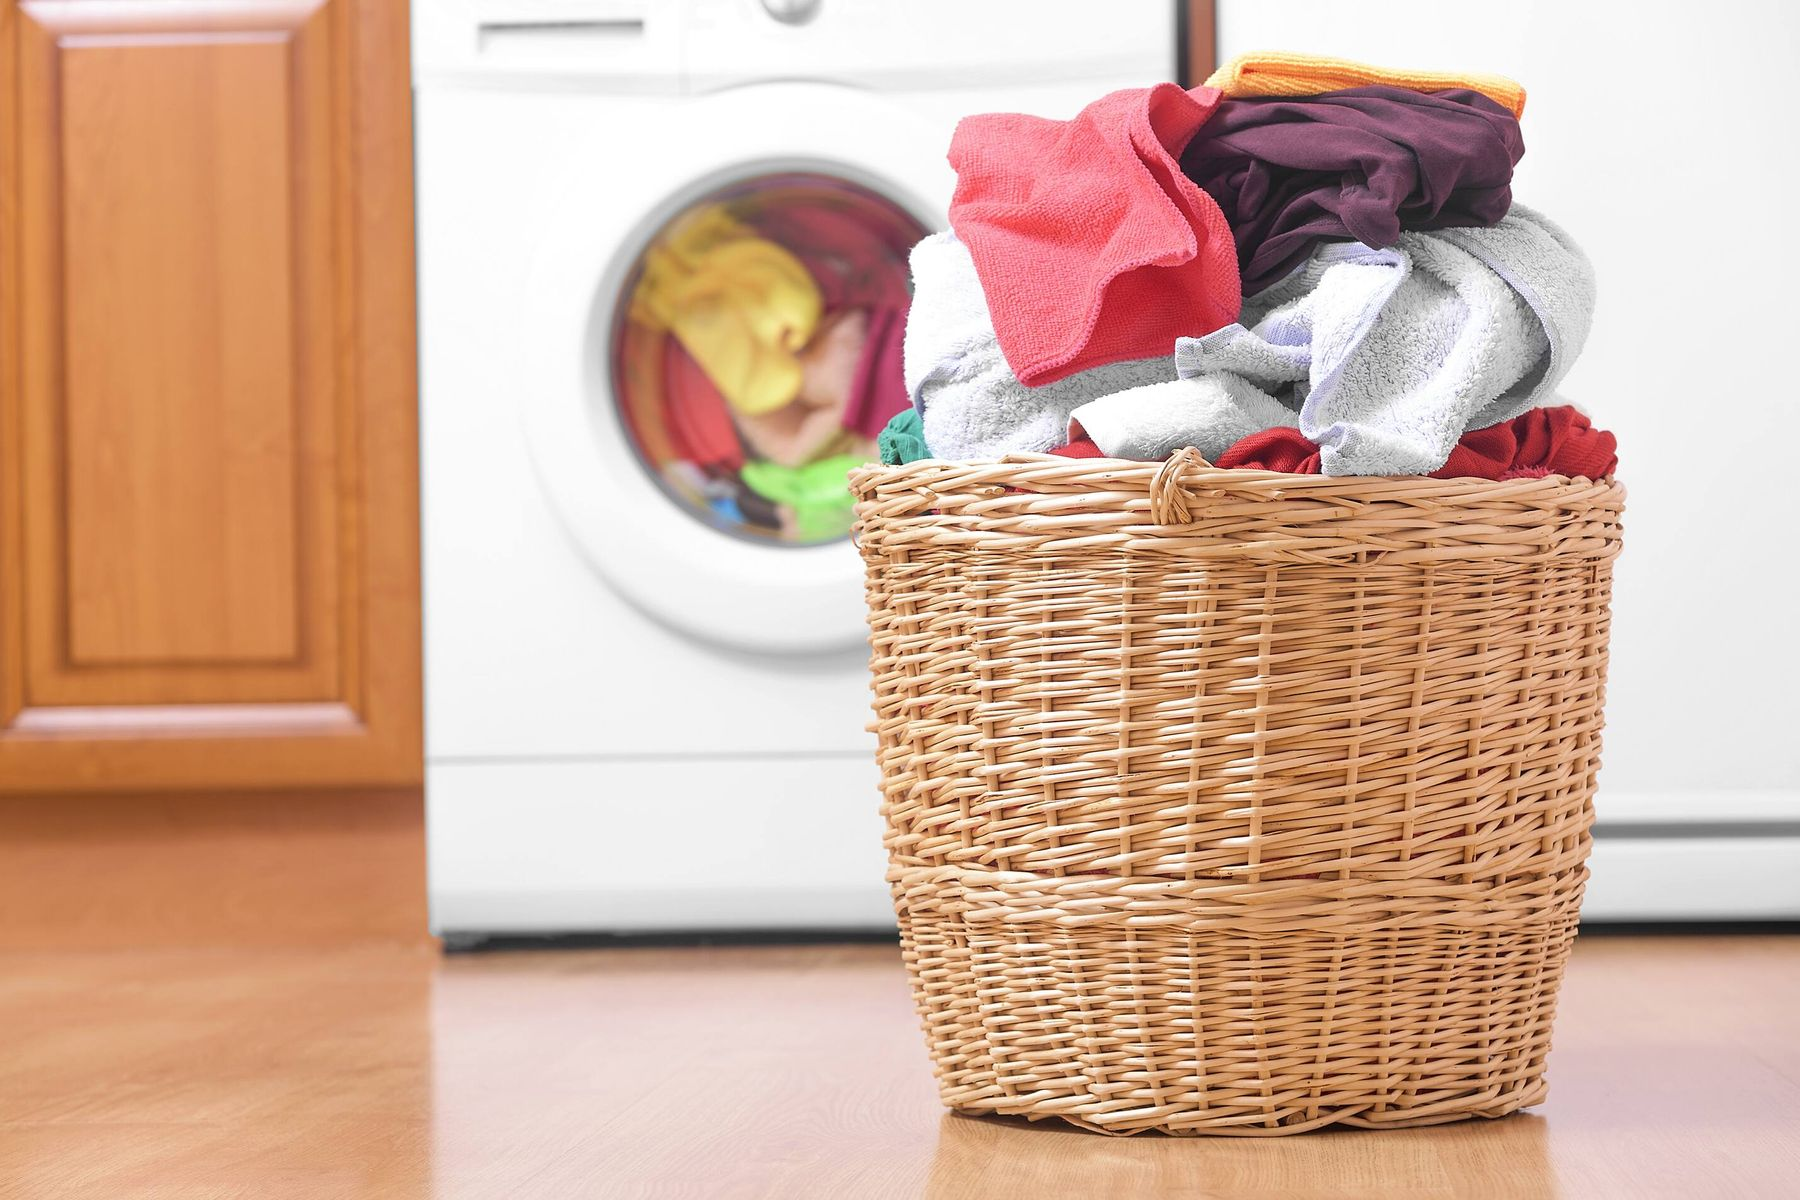 Clothes Getting Dirty After Machine Wash? Simple Fixes to Your Rescue!